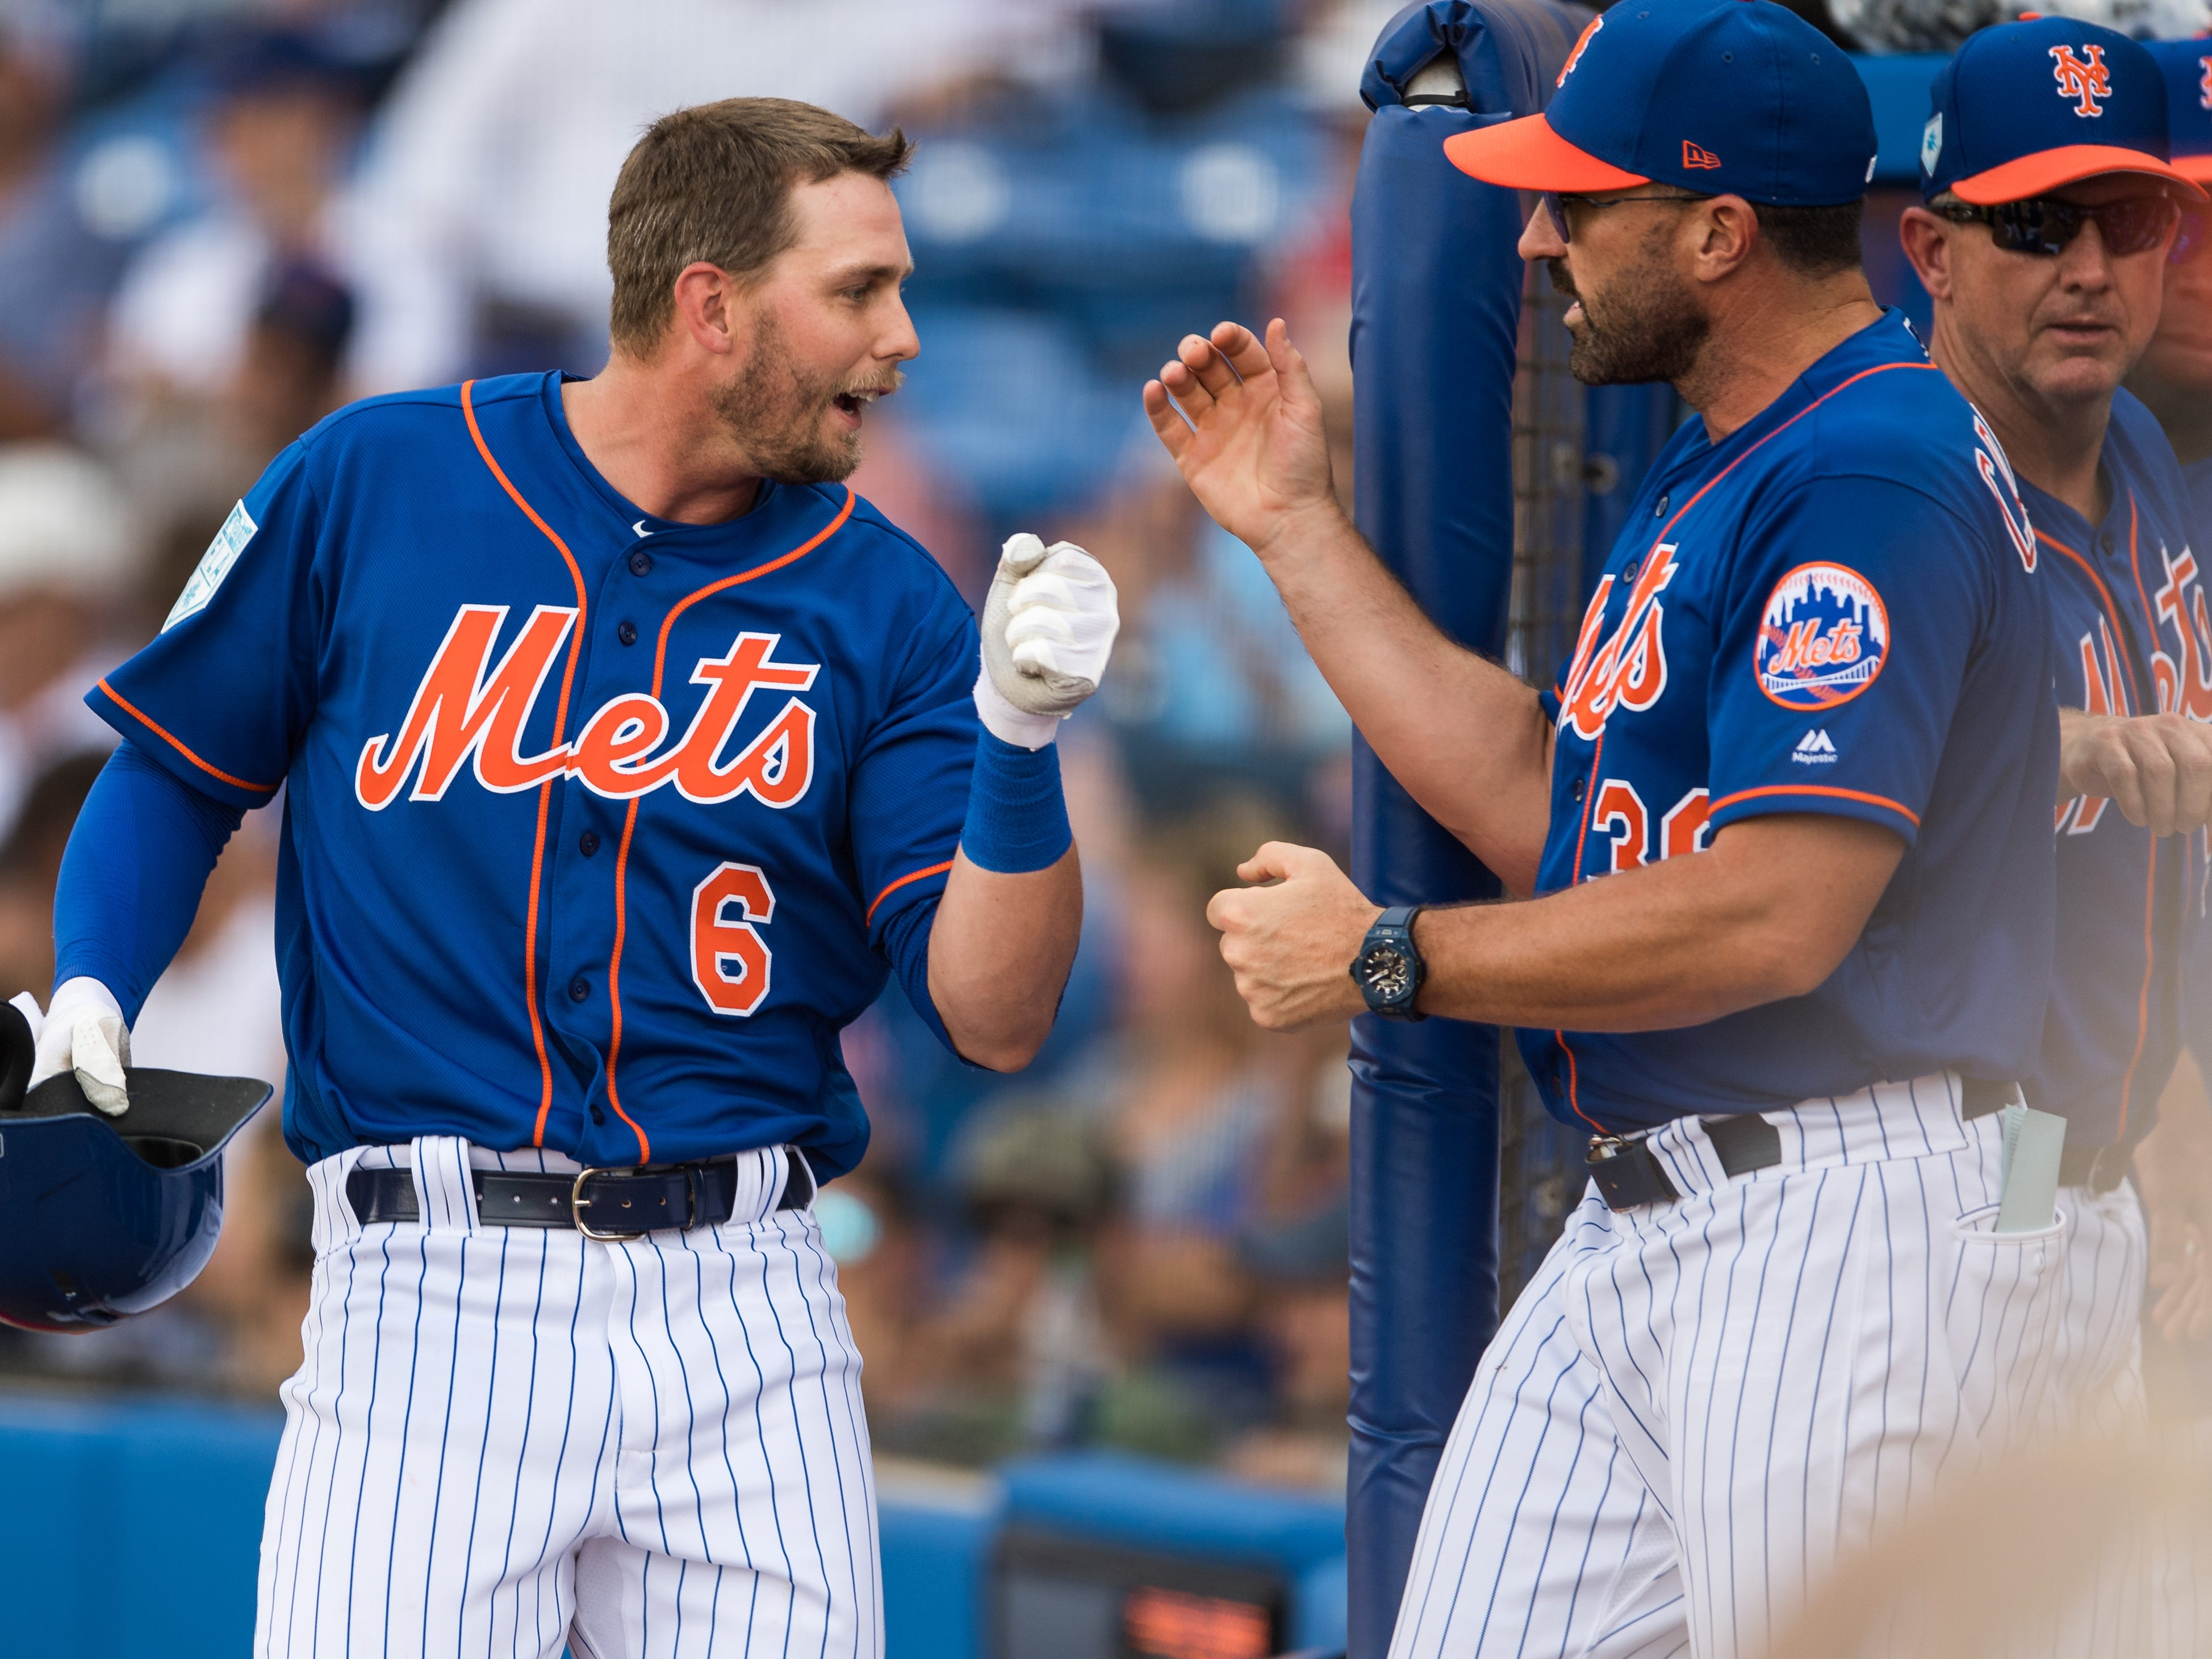 Jeff McNeil (left) with the New York Mets is congratulated by manager Mickey Callaway  after being hit in to score by teammate Robinson Canó, bringing the Mets to a 3-2 lead over the Atlanta Braves in the third inning, during their first spring training game Saturday, Feb. 23, 2019, at First Data Field in Port St. Lucie.